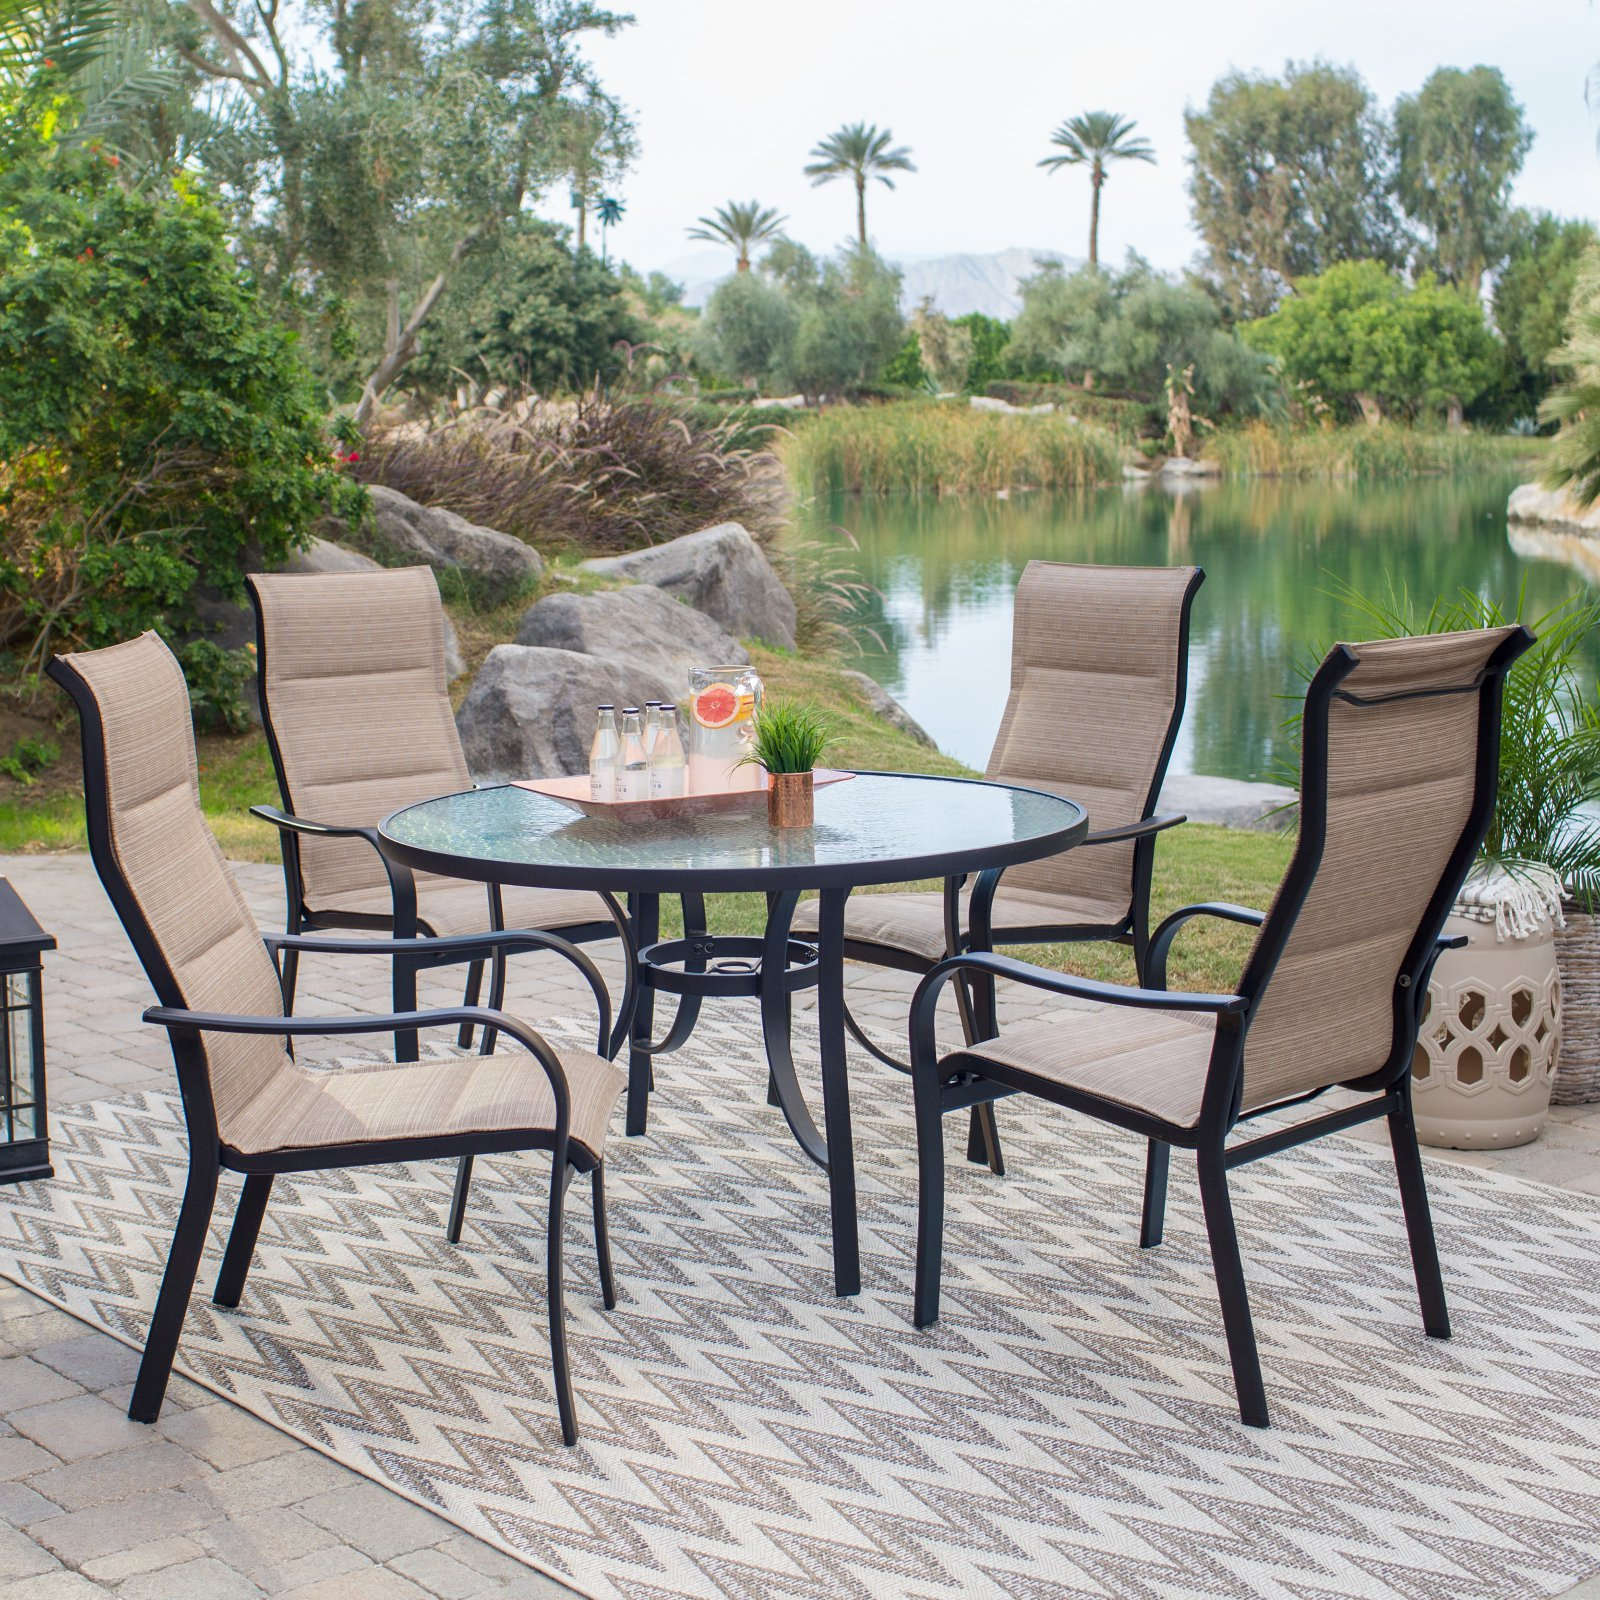 Coral Coast Wimberley Deluxe Padded Sling 5 Piece Patio Dining Set